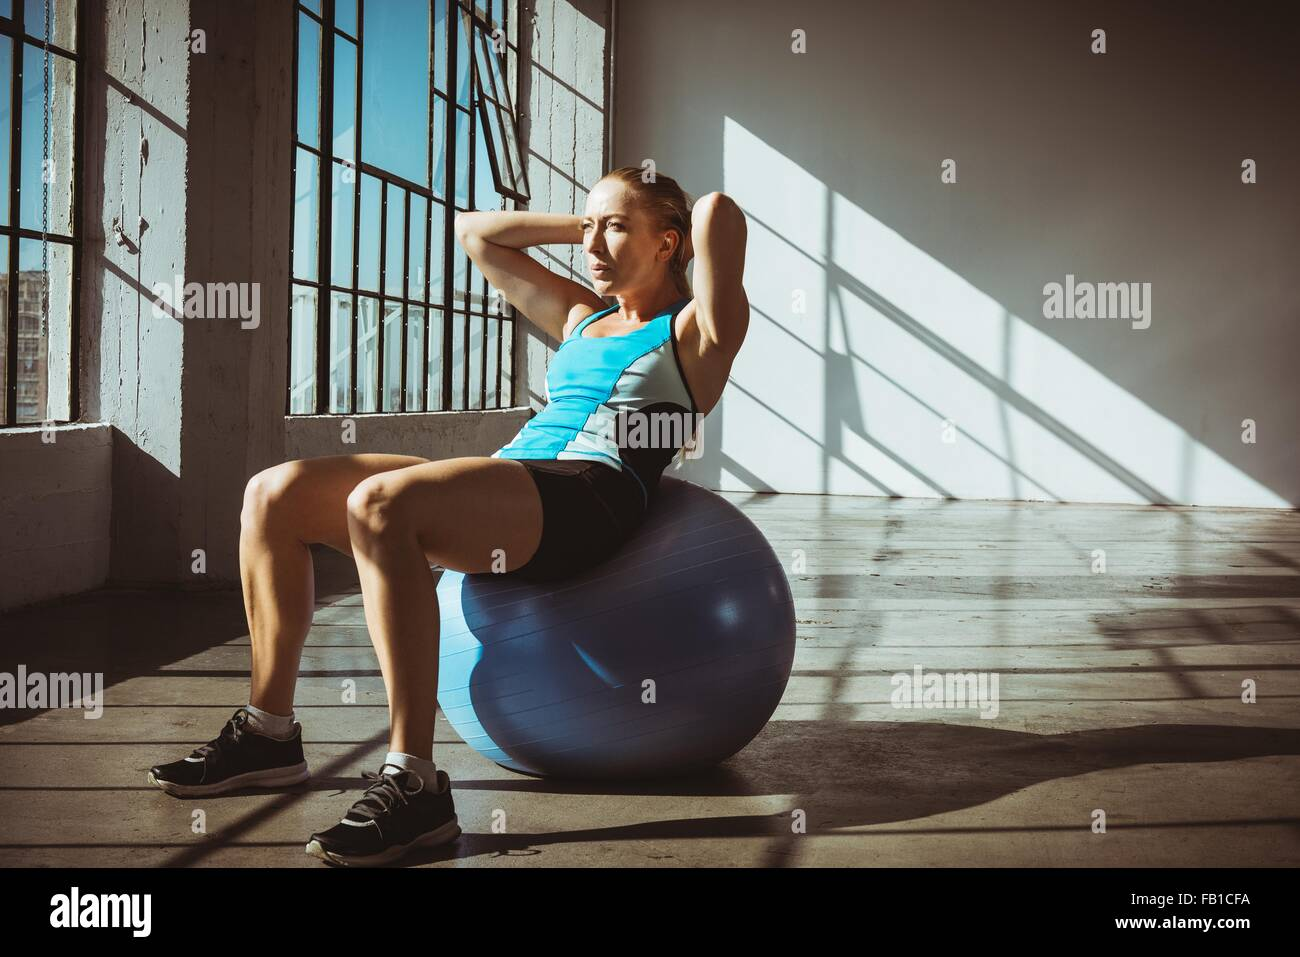 Young woman in gym sitting on exercise ball hands behind head, looking away - Stock Image